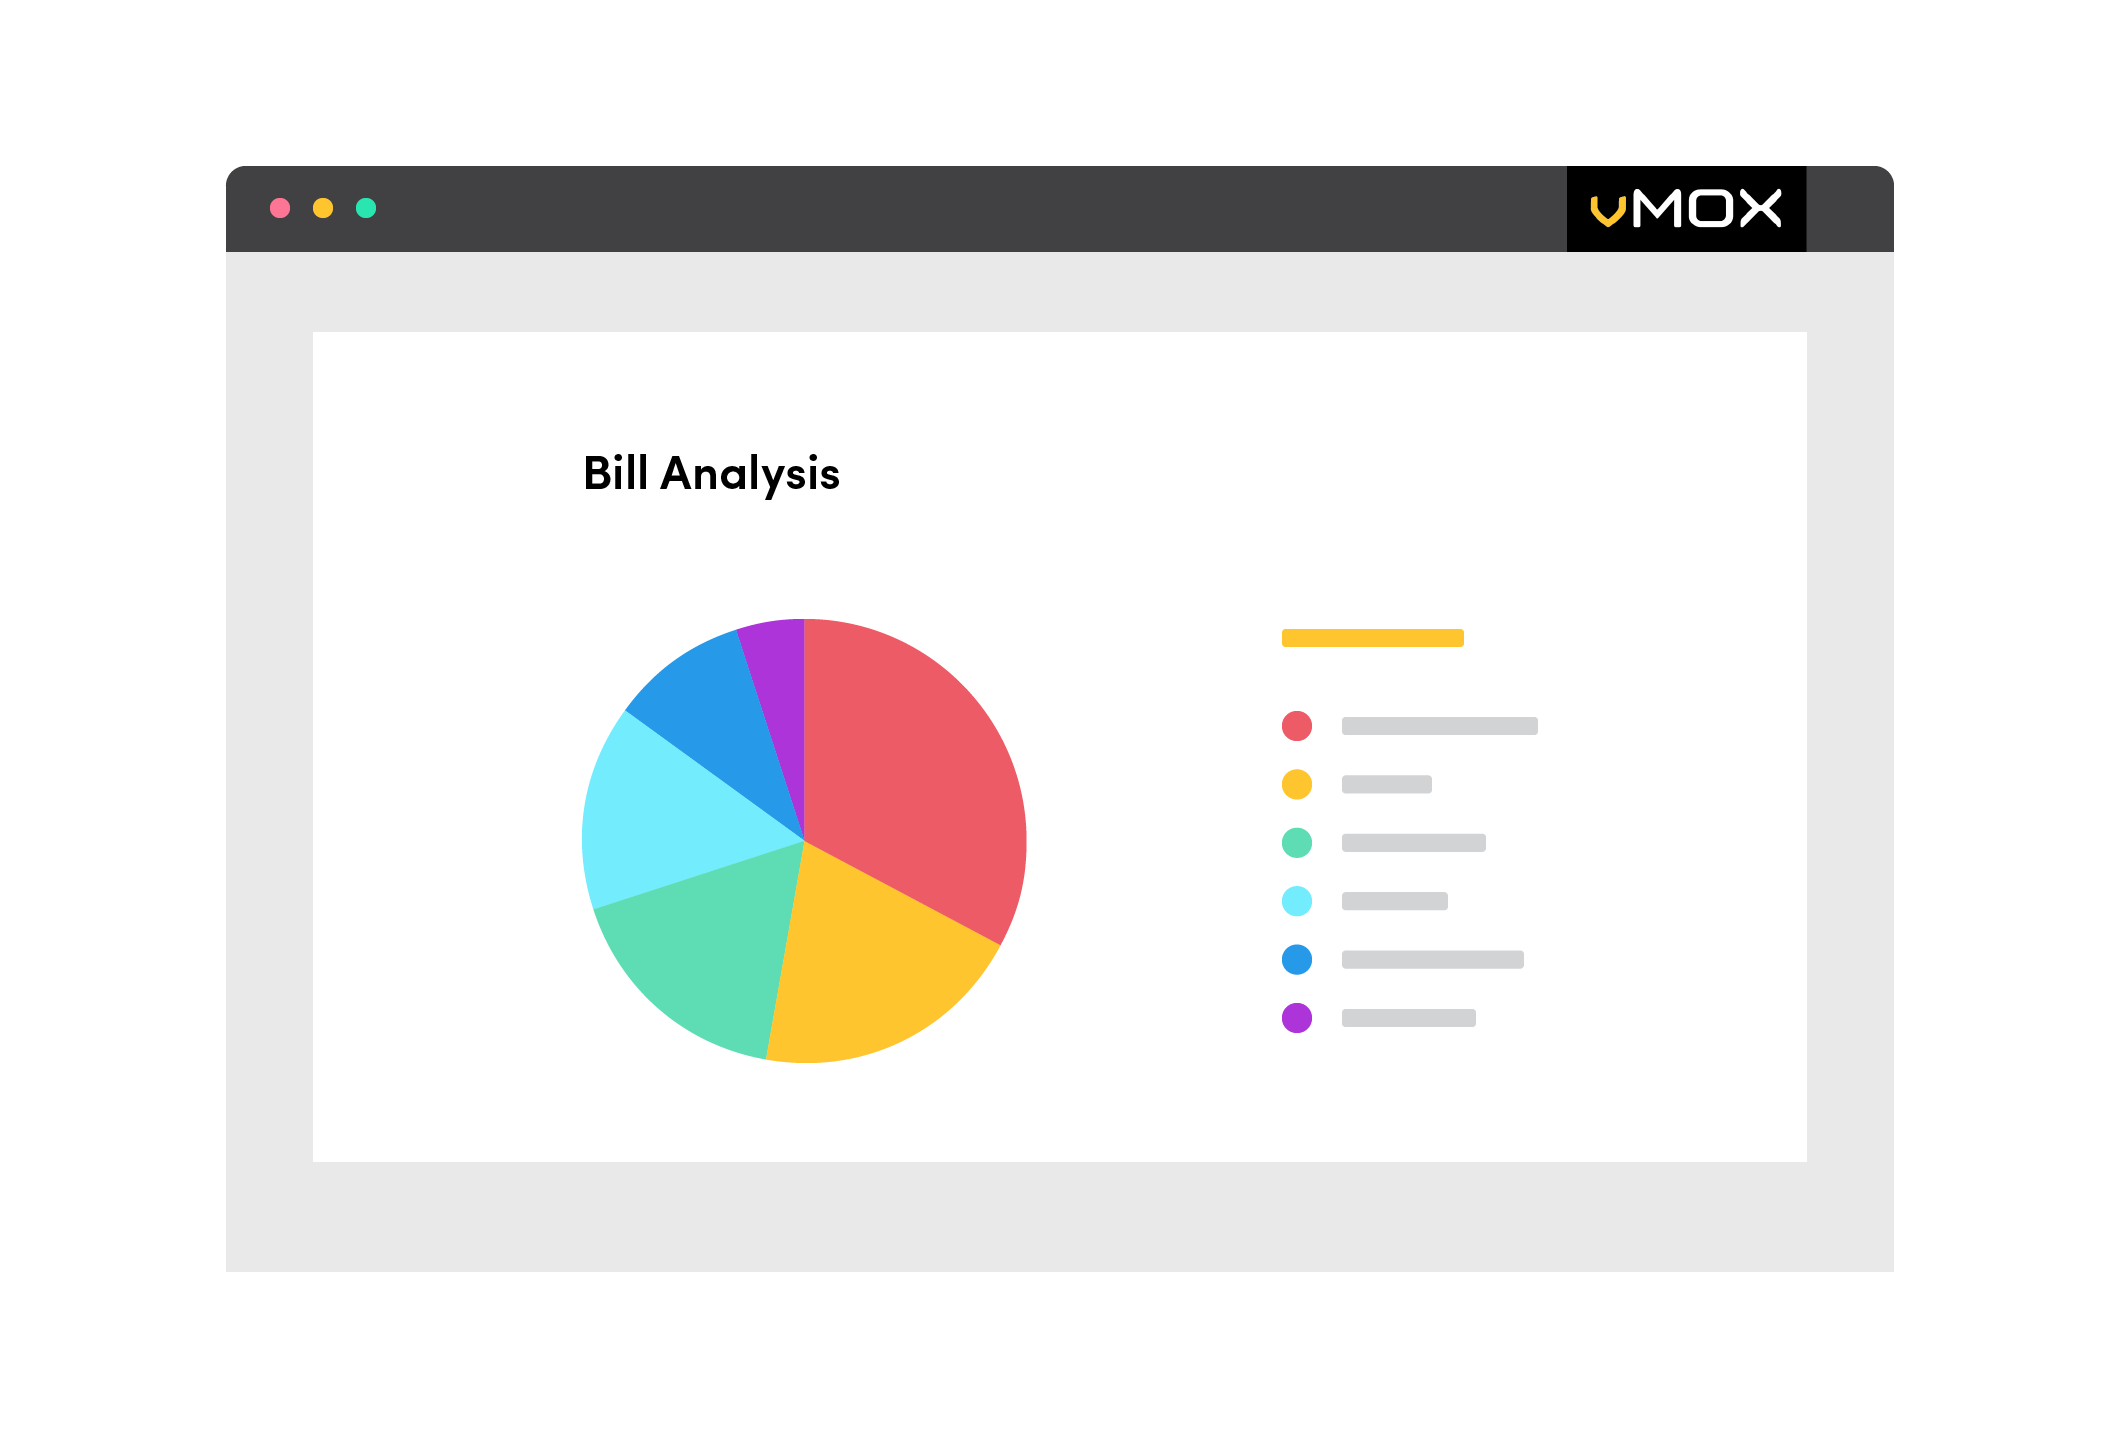 Understand your Costs - Organize, analyze, and optimize spending across all providers. View and download reports on usage and spend by individual, group or geography, and detailed analysis and trend reports for your entire enterprise, regardless of provider. Allocate costs by general ledger cost center for invoice and expense reconciliation.